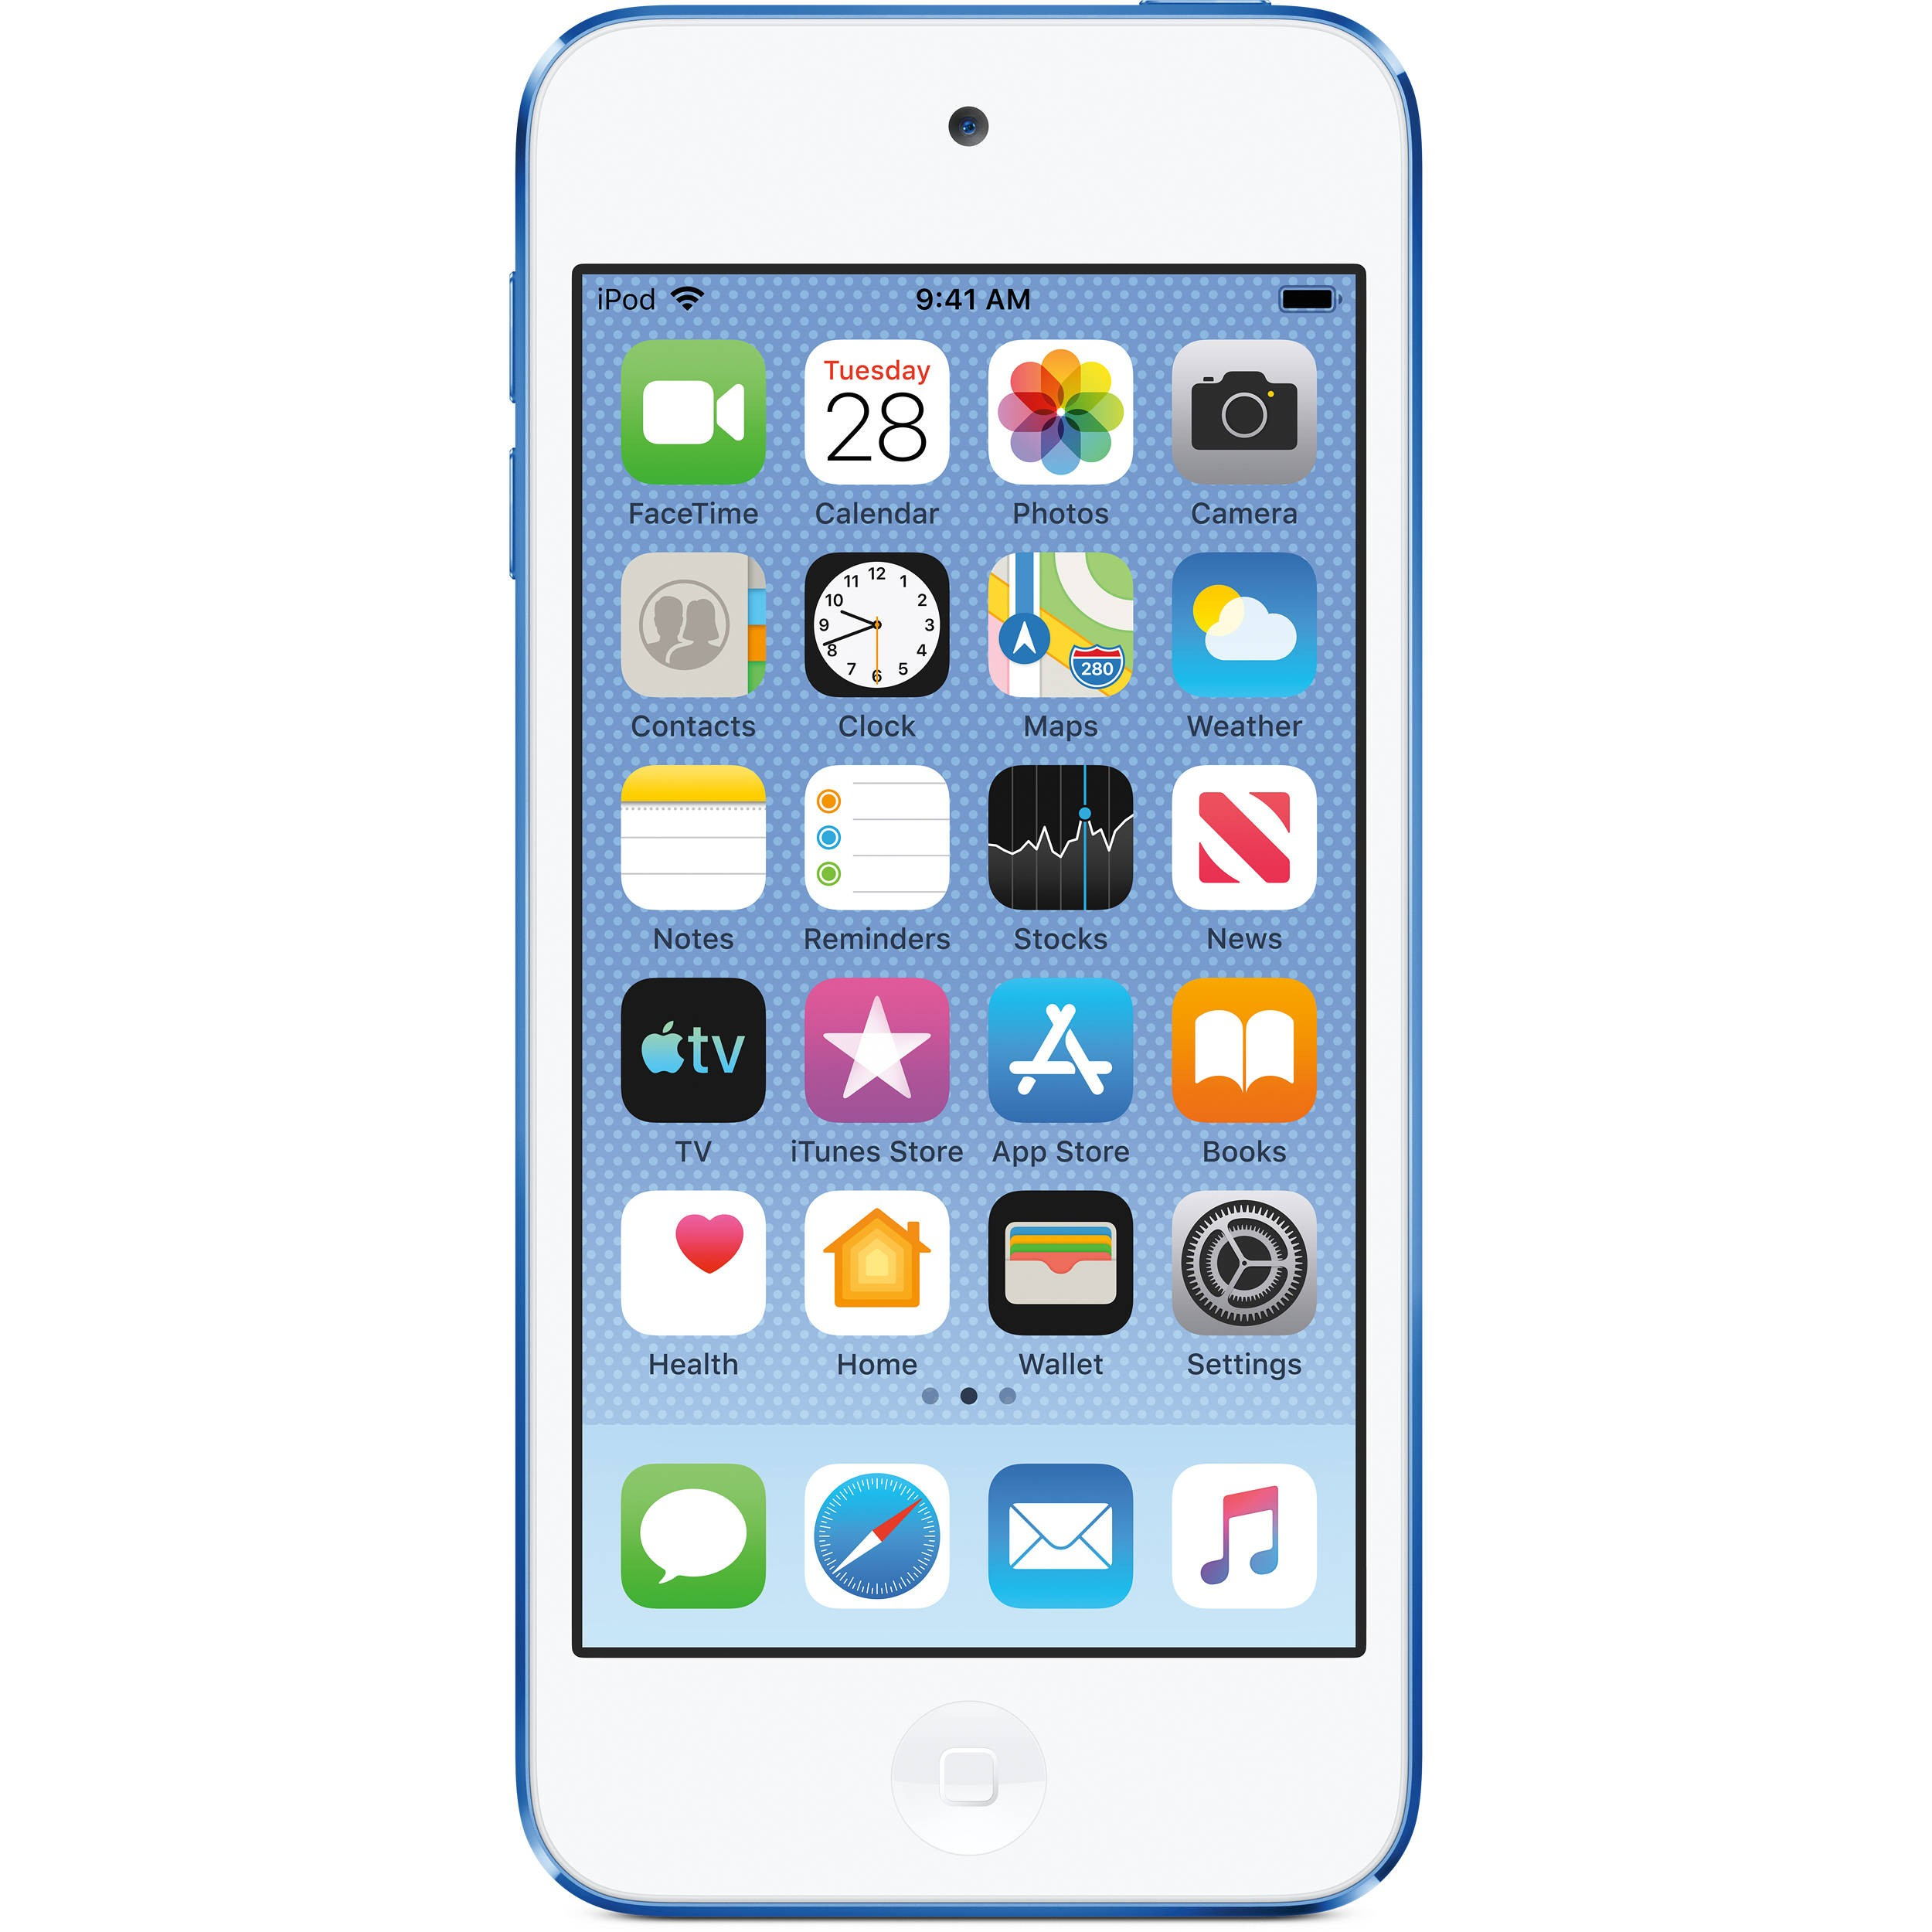 Apple iPod Touch Gen 7 Tested for Key Functions,R2/Ready for Resale Z2, Jacksonville FL